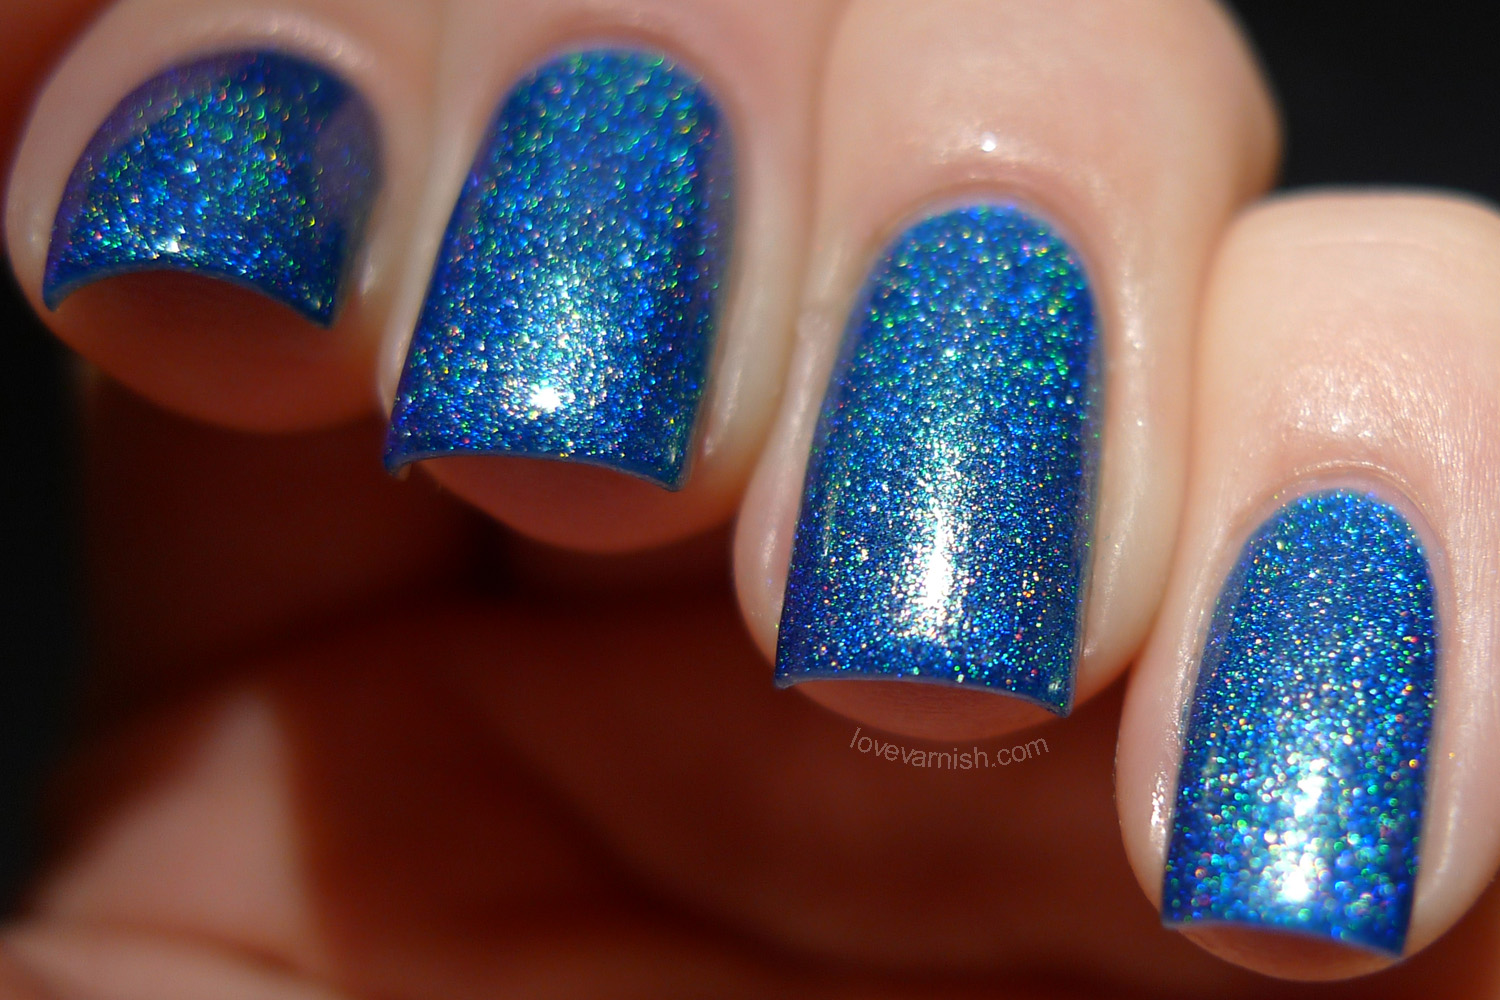 F.U.N Lacquer Dazzling Blue holographic polish